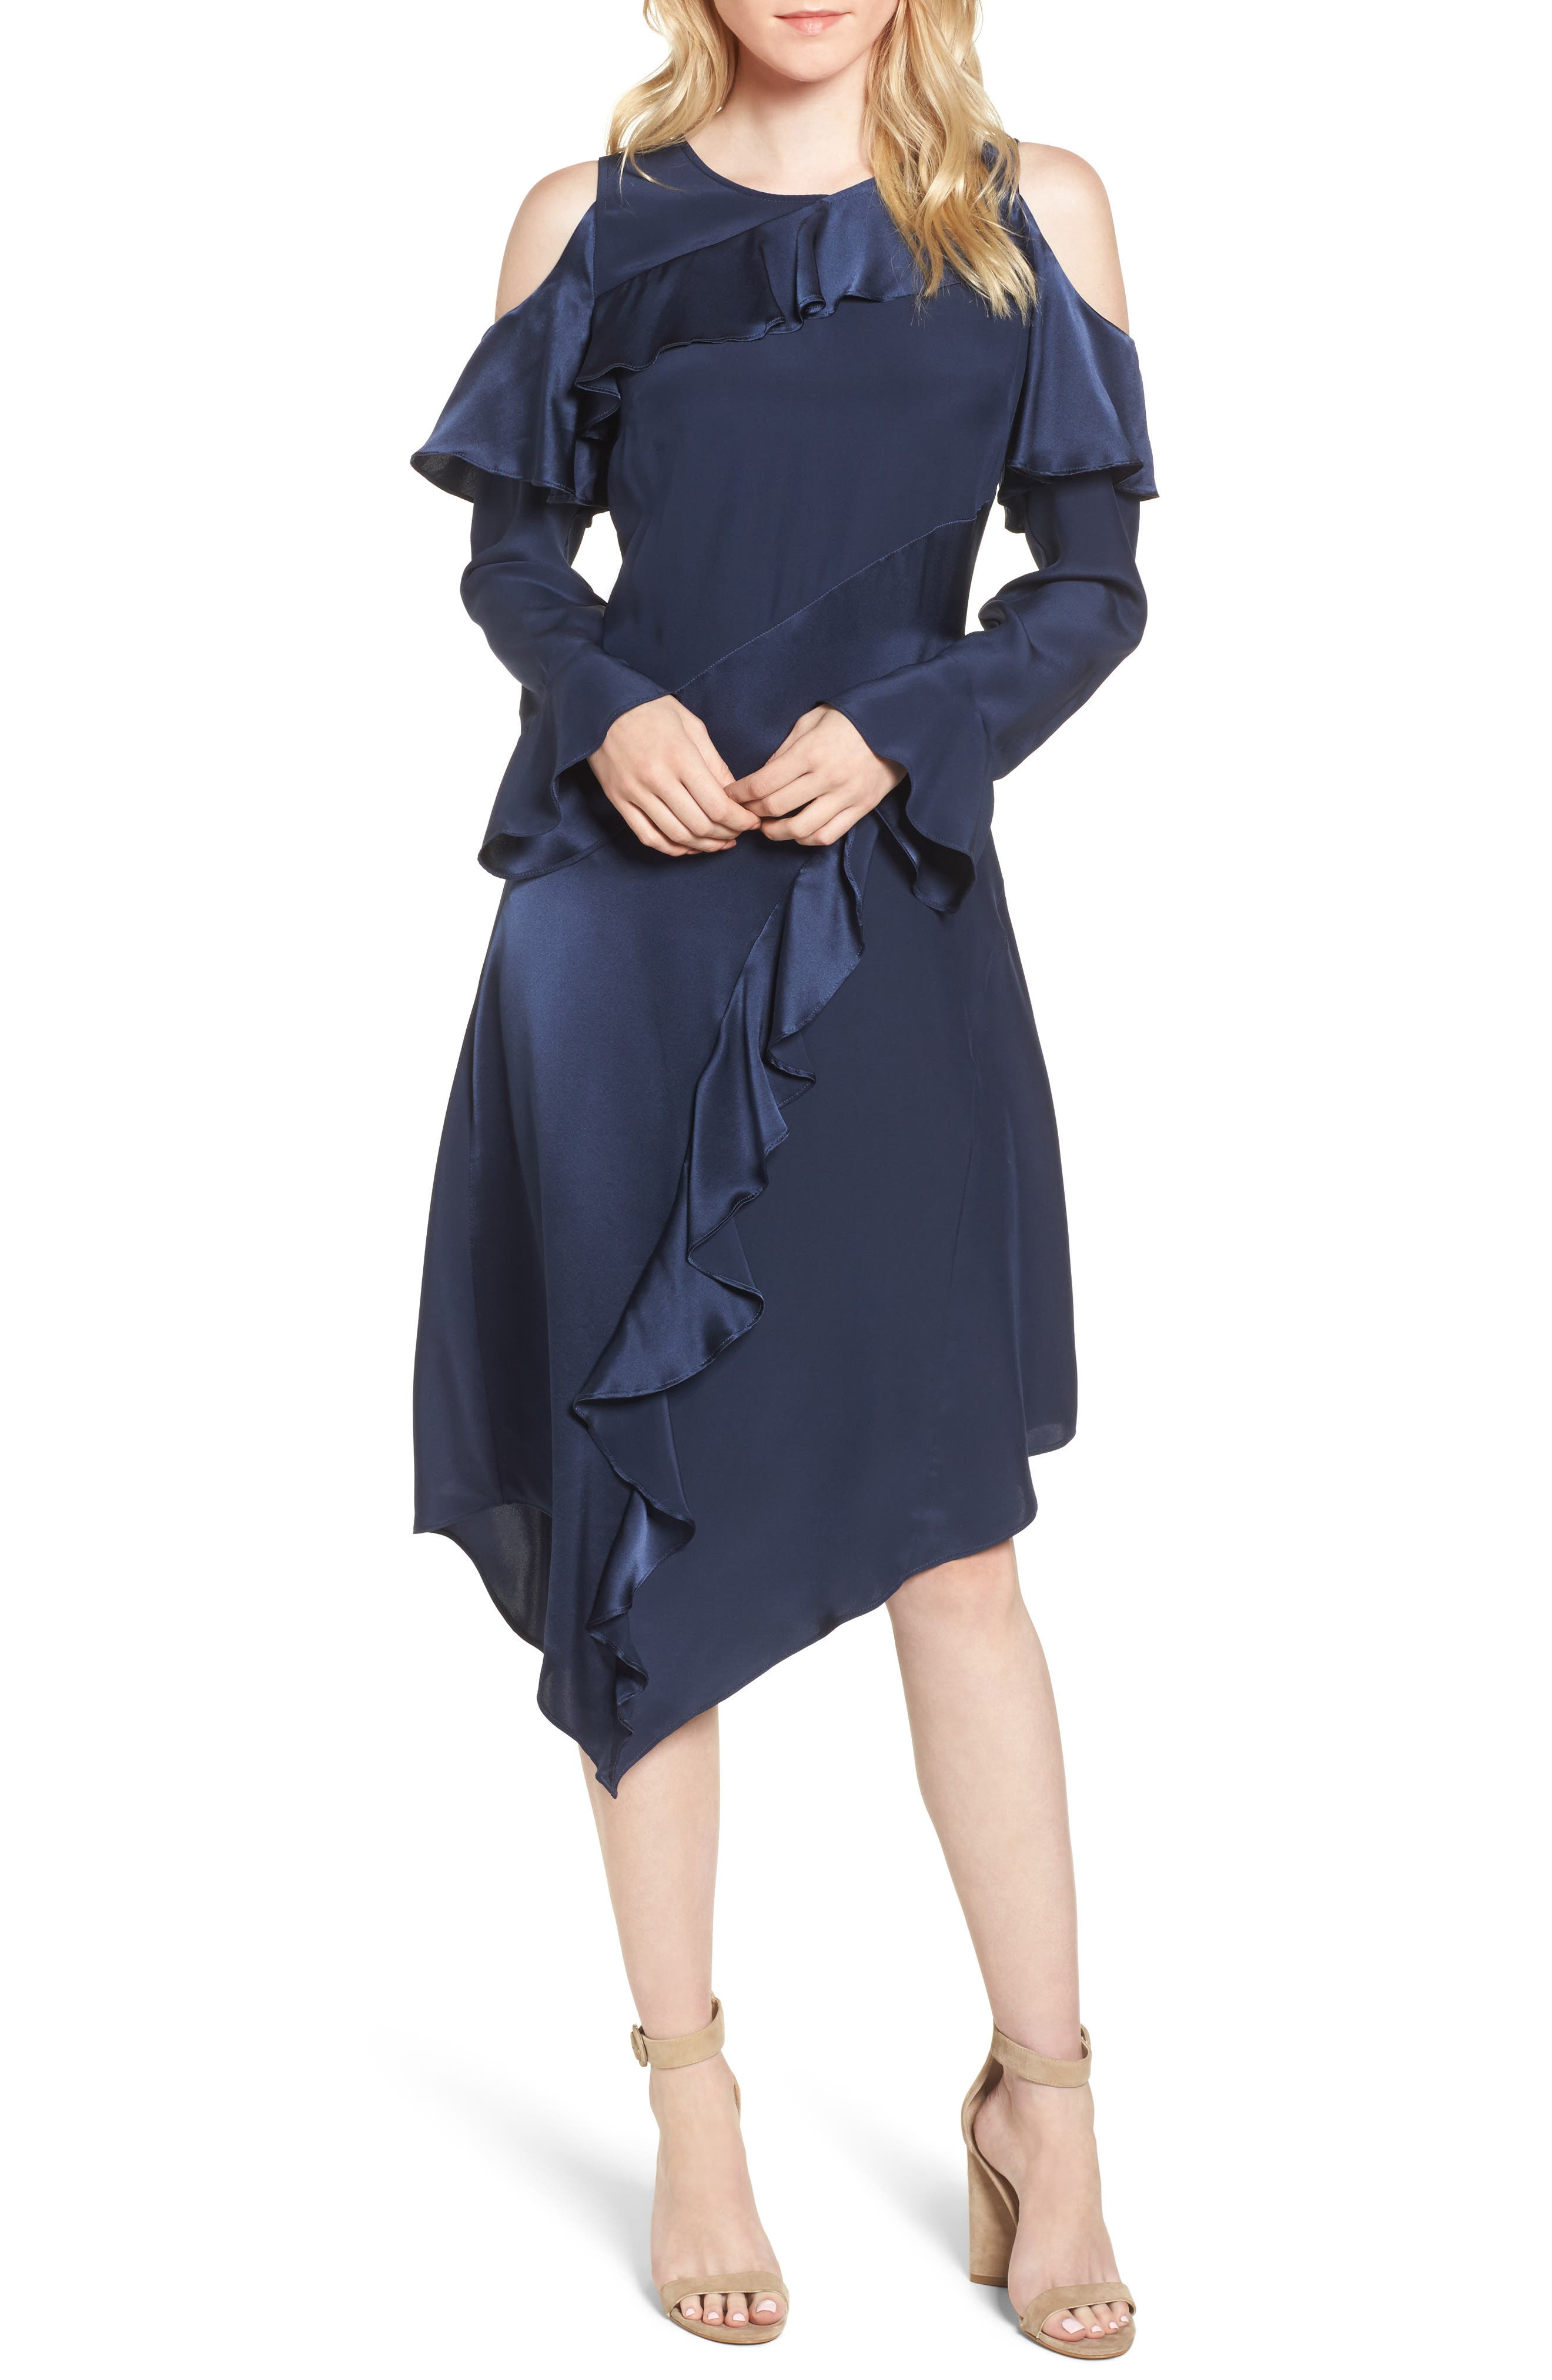 Alternate Image 1 Selected - Parker Nadeen Ruffle Cold Shoulder A-Line Dress